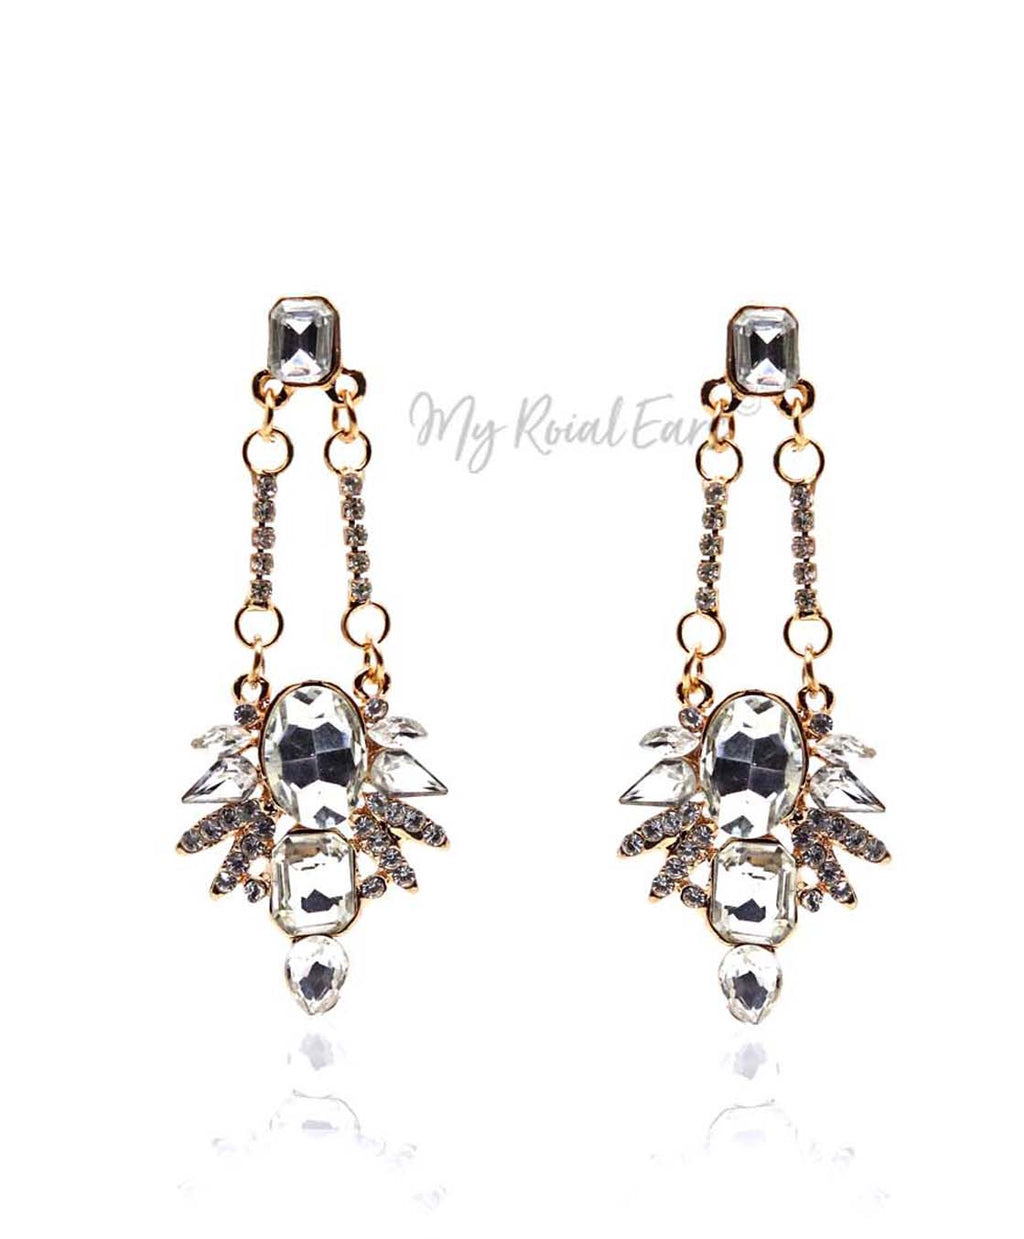 Q ALICE-handmade crystal glass dangle earrings - My Roial Ears LTD